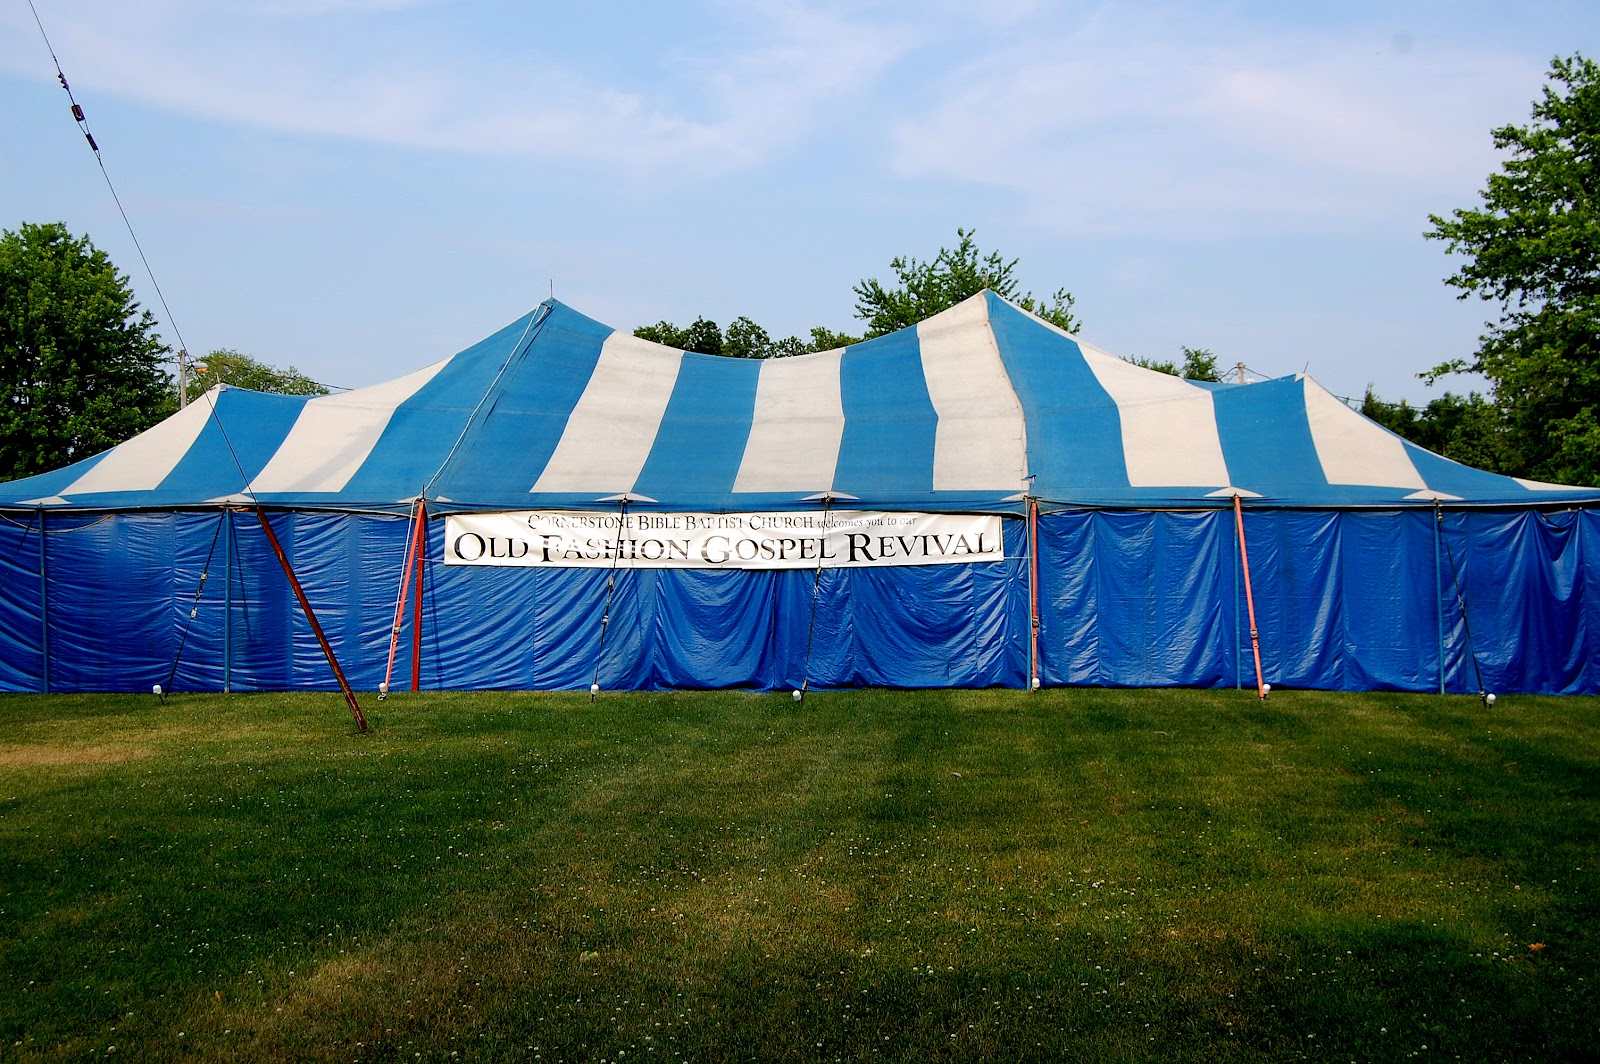 The  Old Fashioned Gospel Tent  at Cornerstone Bible Baptist Church in Sanborn New York & Evangelist Craig Cobb: DAY #1 - Tent Revival at Cornerstone Bible ...